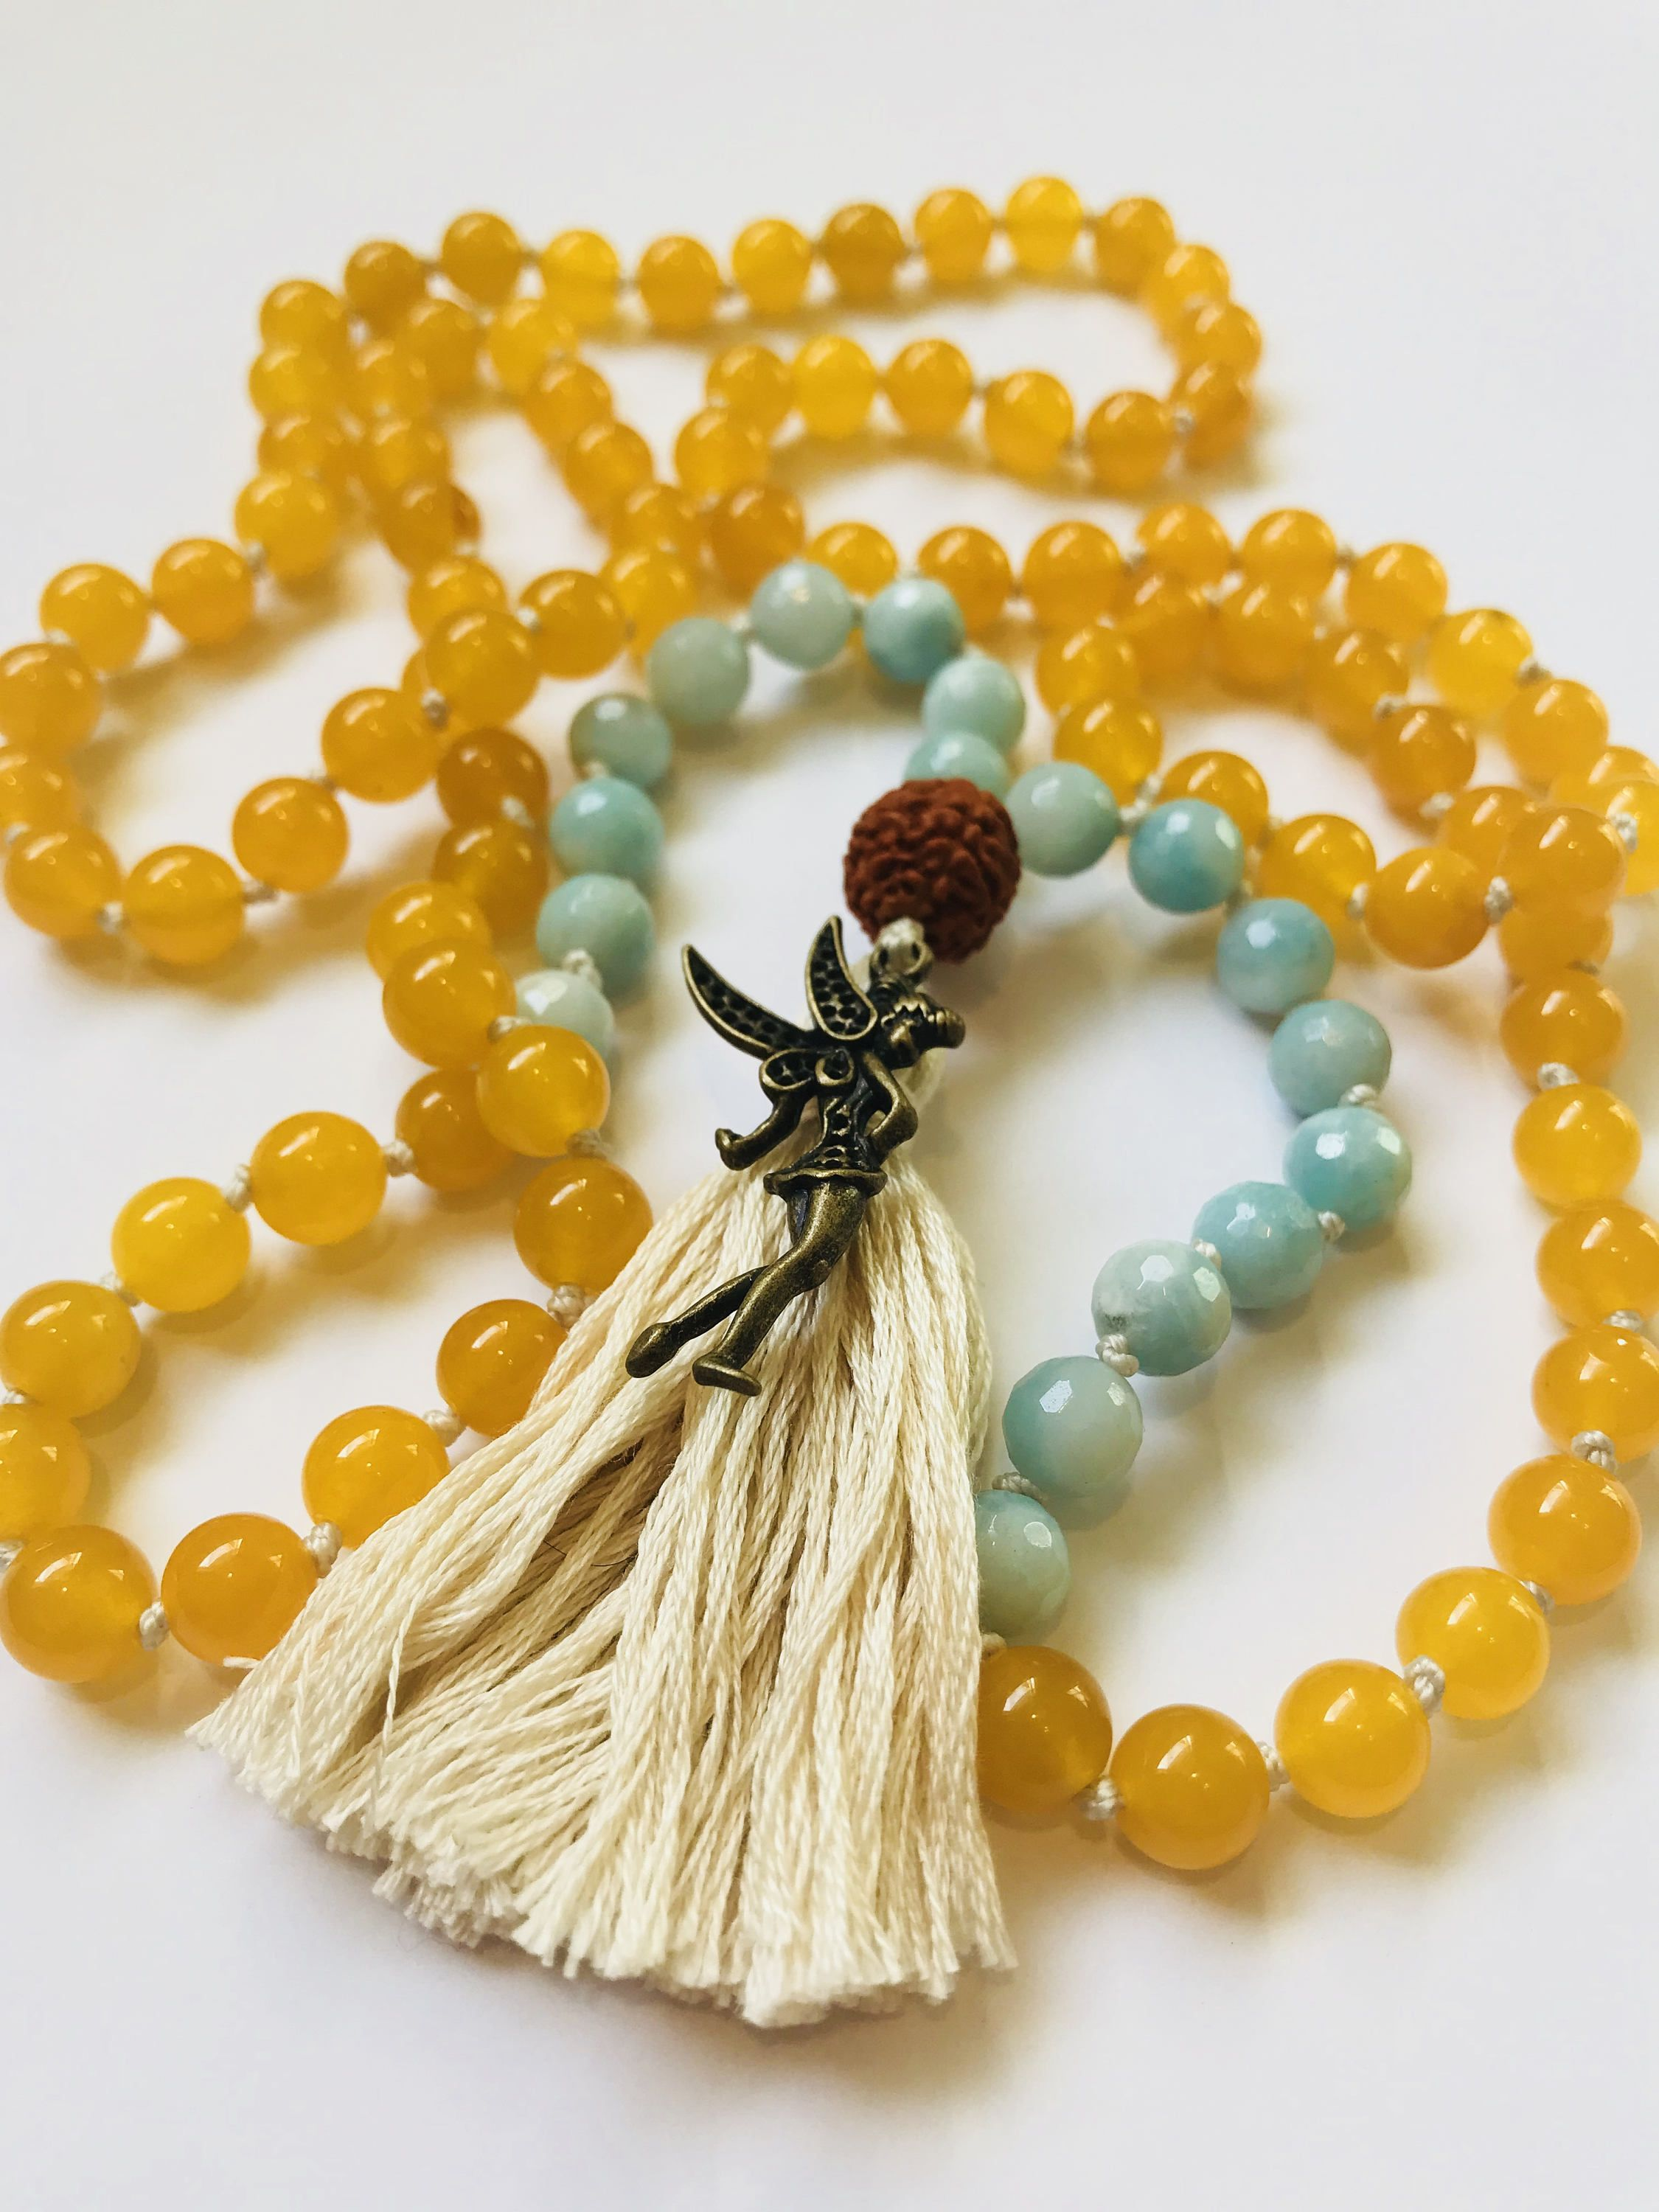 Excited to share the latest addition to my #etsy shop: The Never Grow Up Mala- Childlike Wonder. Yellow Jade, Green Amazonite and Rudraksha Japa Mala Necklace. 108, Hand Knotted http://etsy.me/2iZKqYL #jewelry #moksayoga